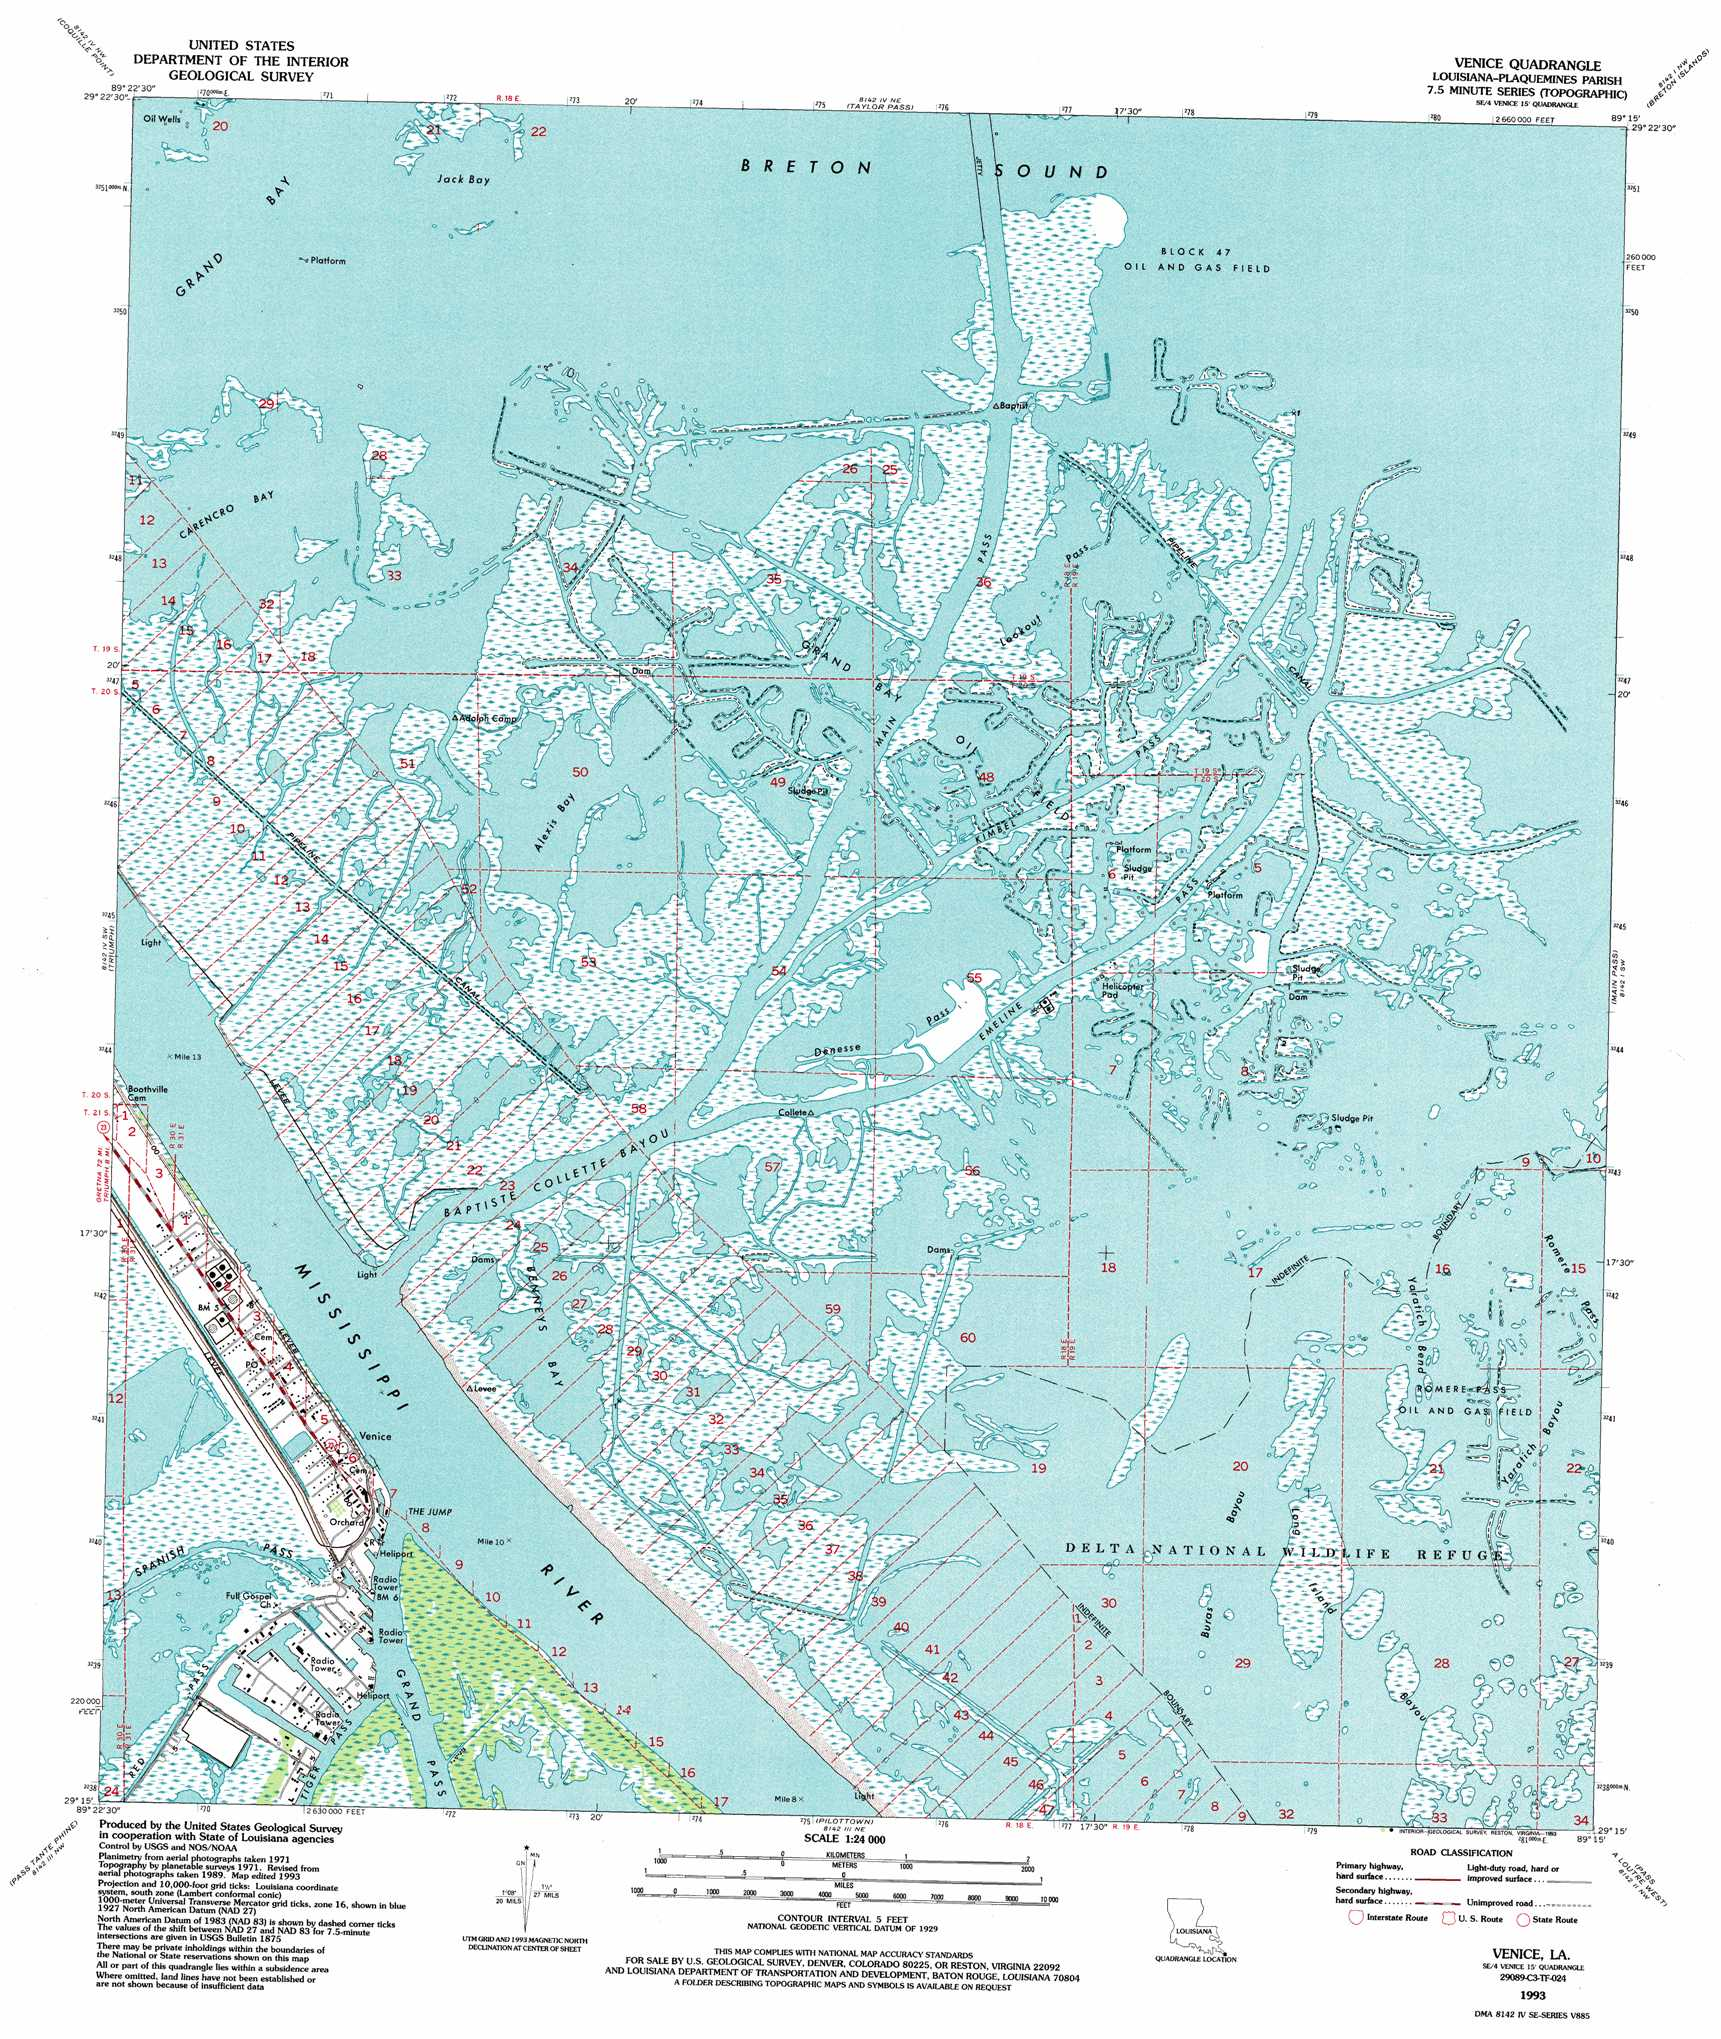 colorado physical map with 29089c3 on mon Personal Injuries further 29089c3 likewise Horseshoe Bend also Conflict Over Water Resources Colorado River further 42123d3.